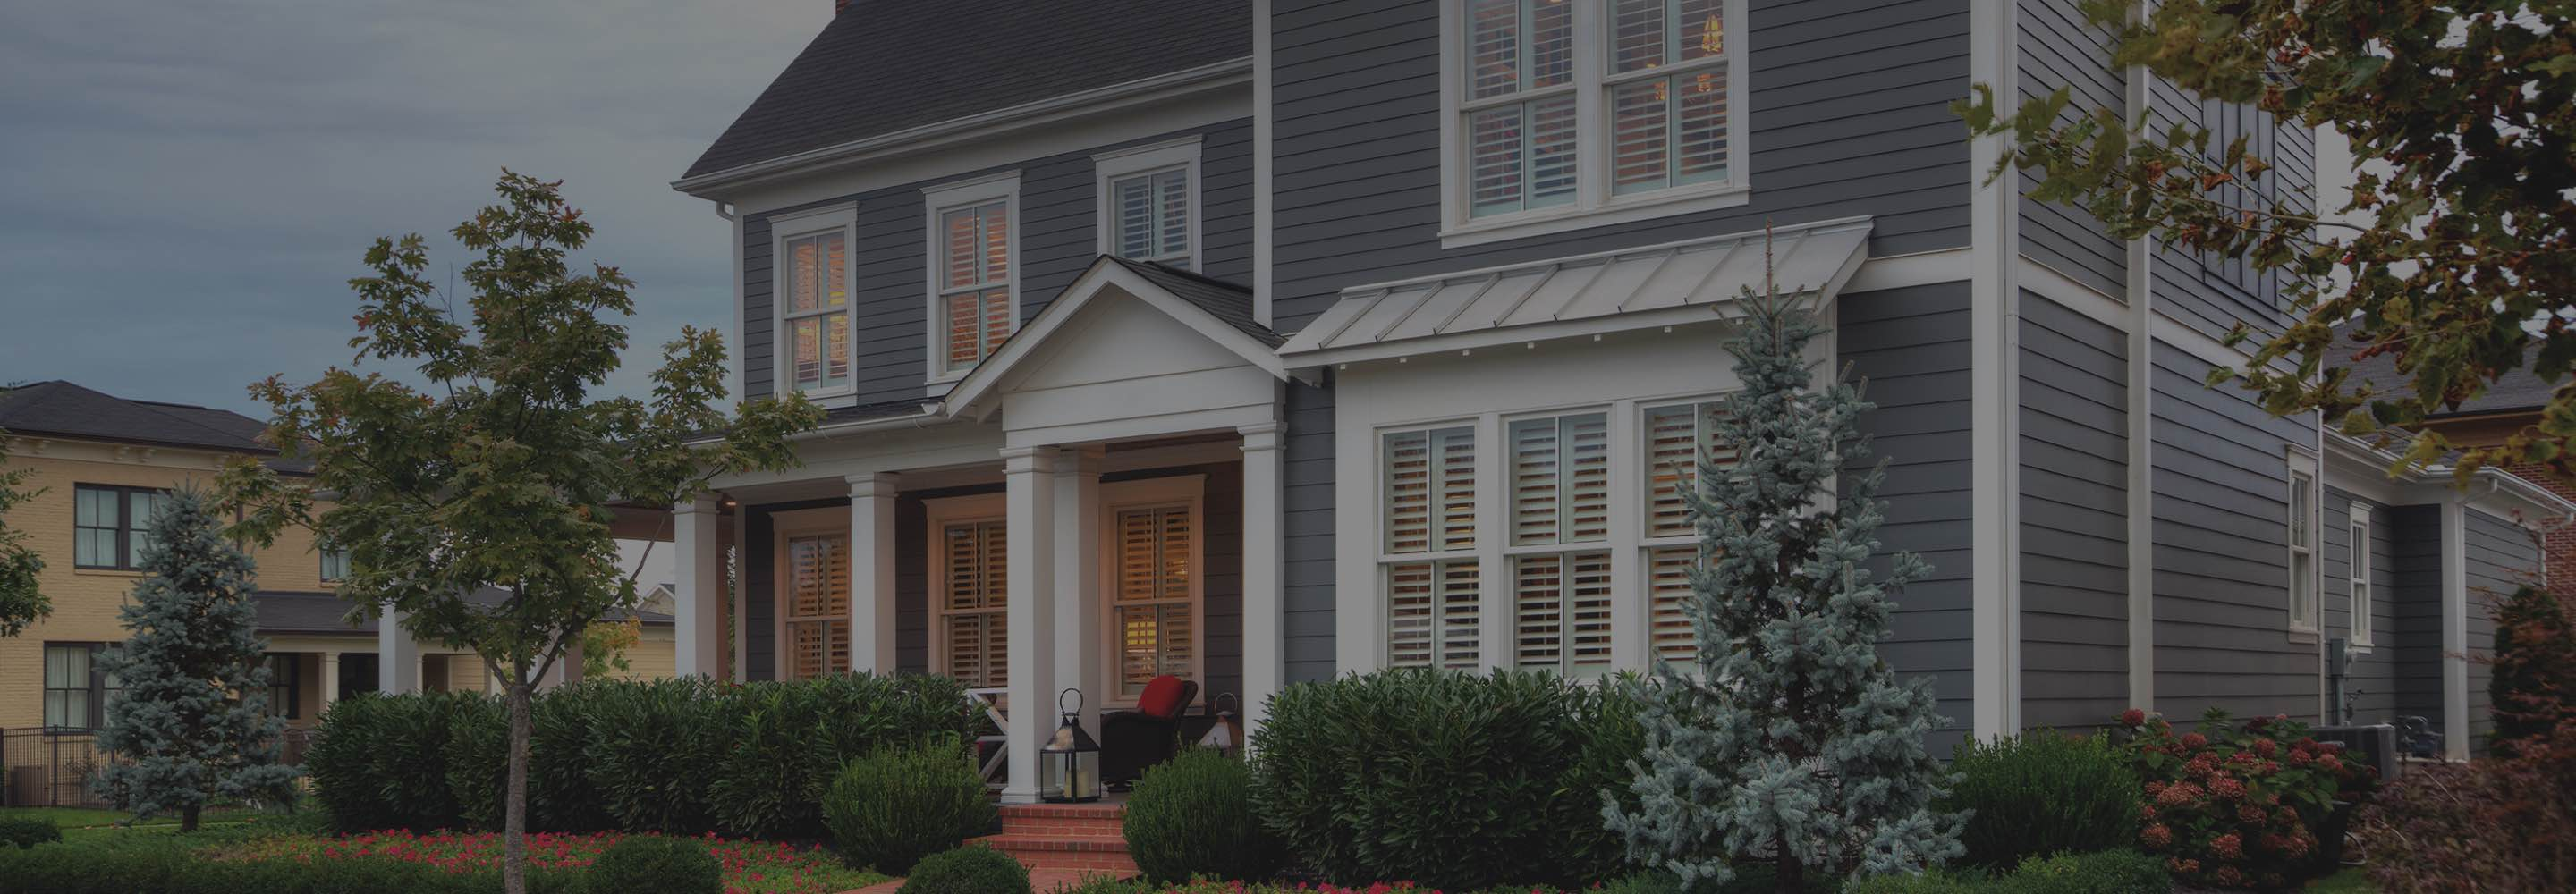 Outstanding Fiber Cement Siding Options James Hardie Home Interior And Landscaping Transignezvosmurscom